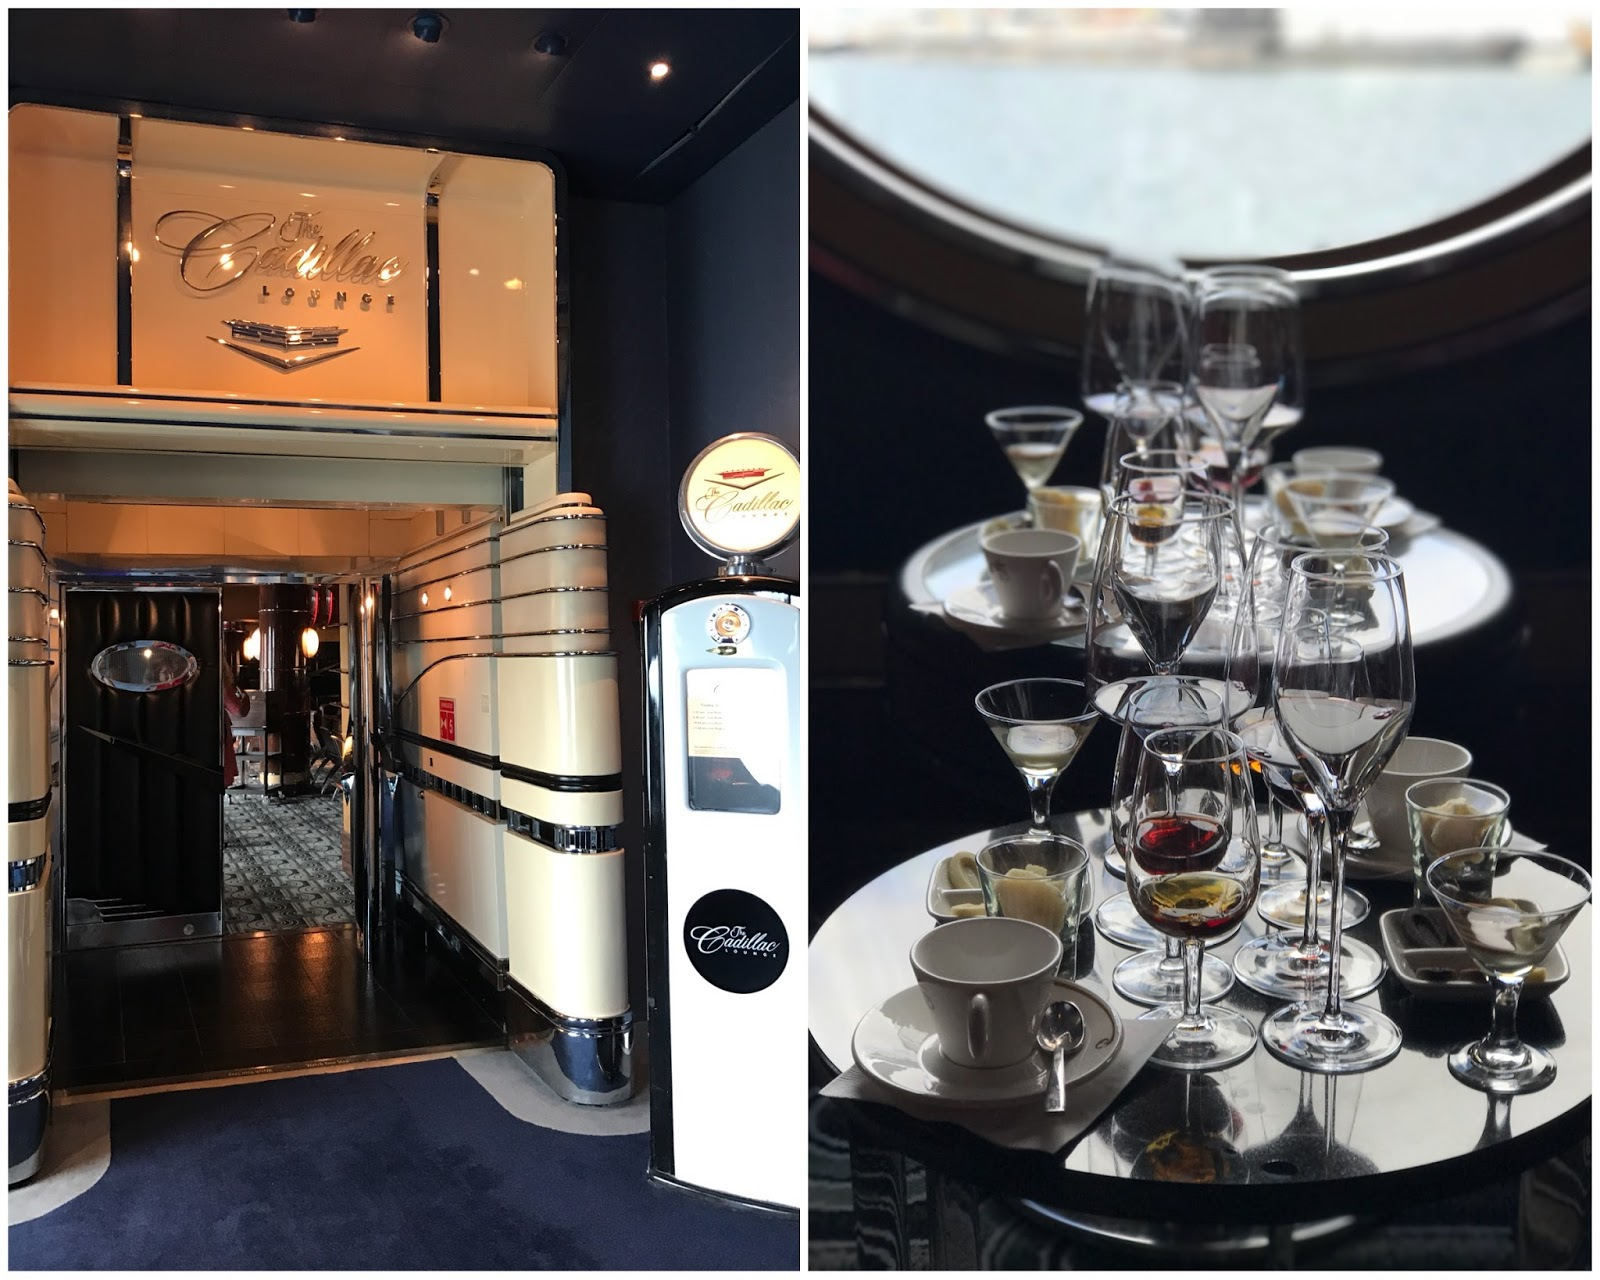 The Cadillac Lounge on Disney Wonder, wine tasting at Disney, wine tasting on Disney cruise ship